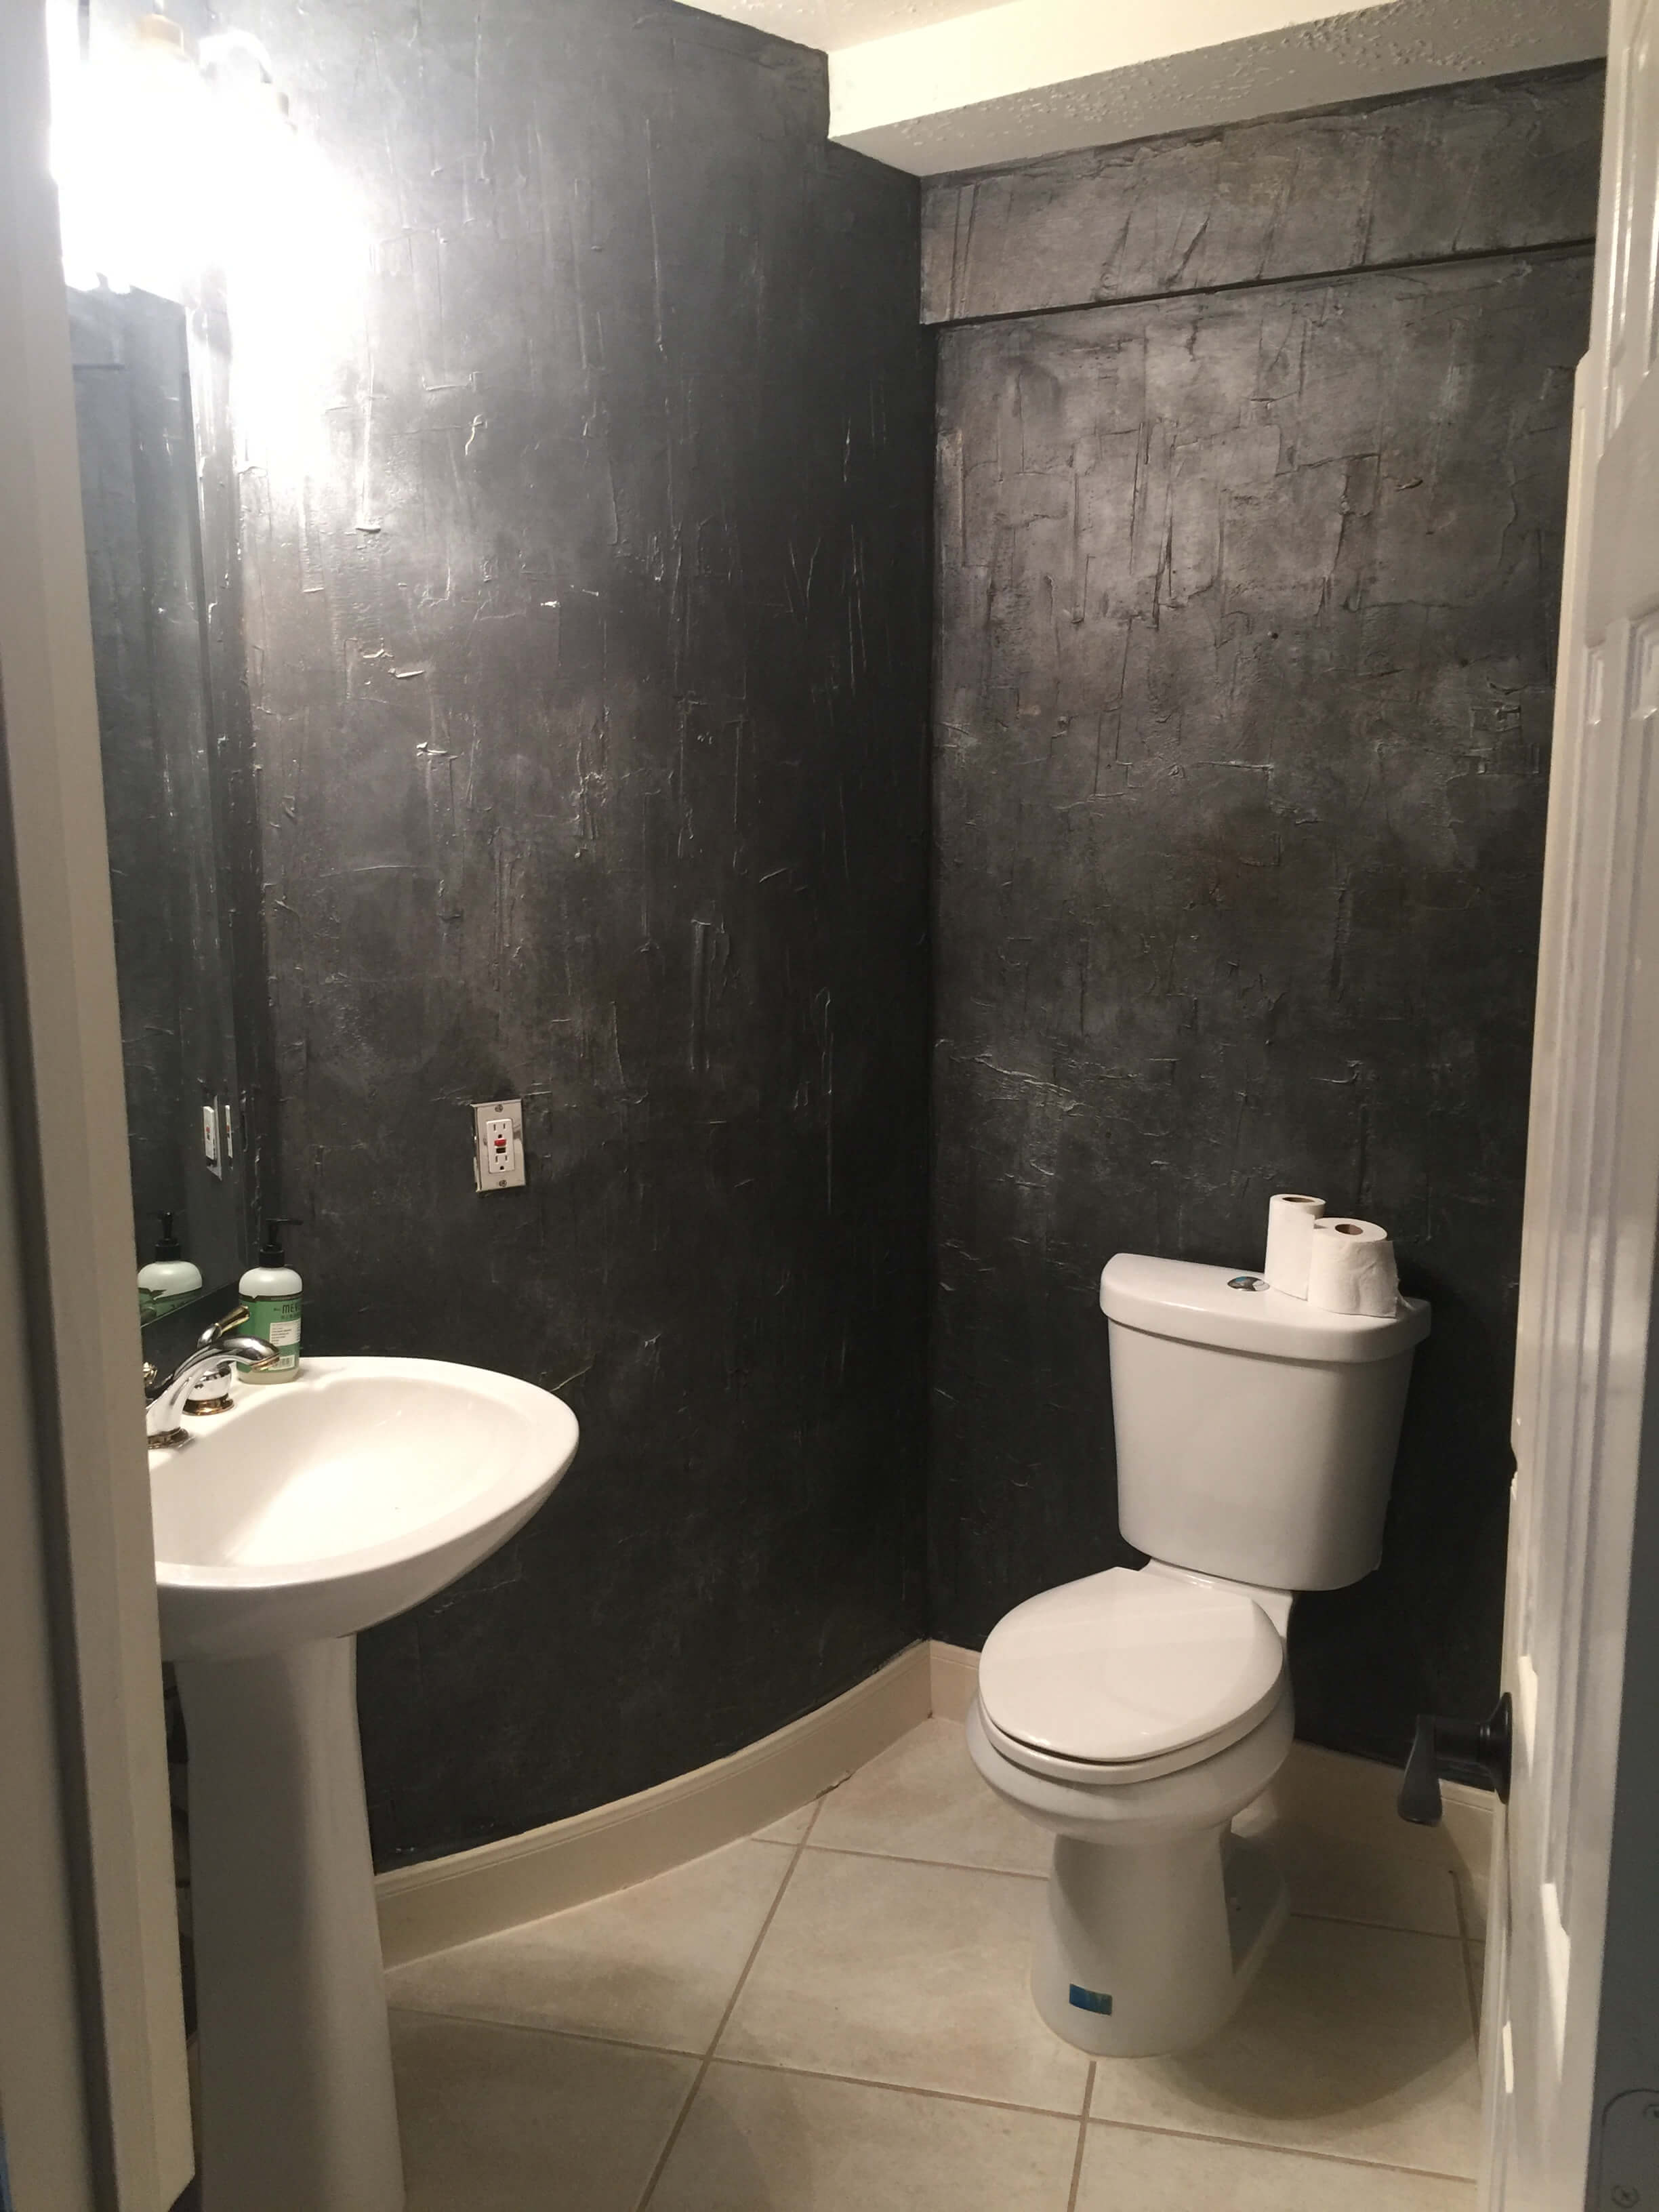 BEFORE pic - Powder room with heavy, dark textured walls